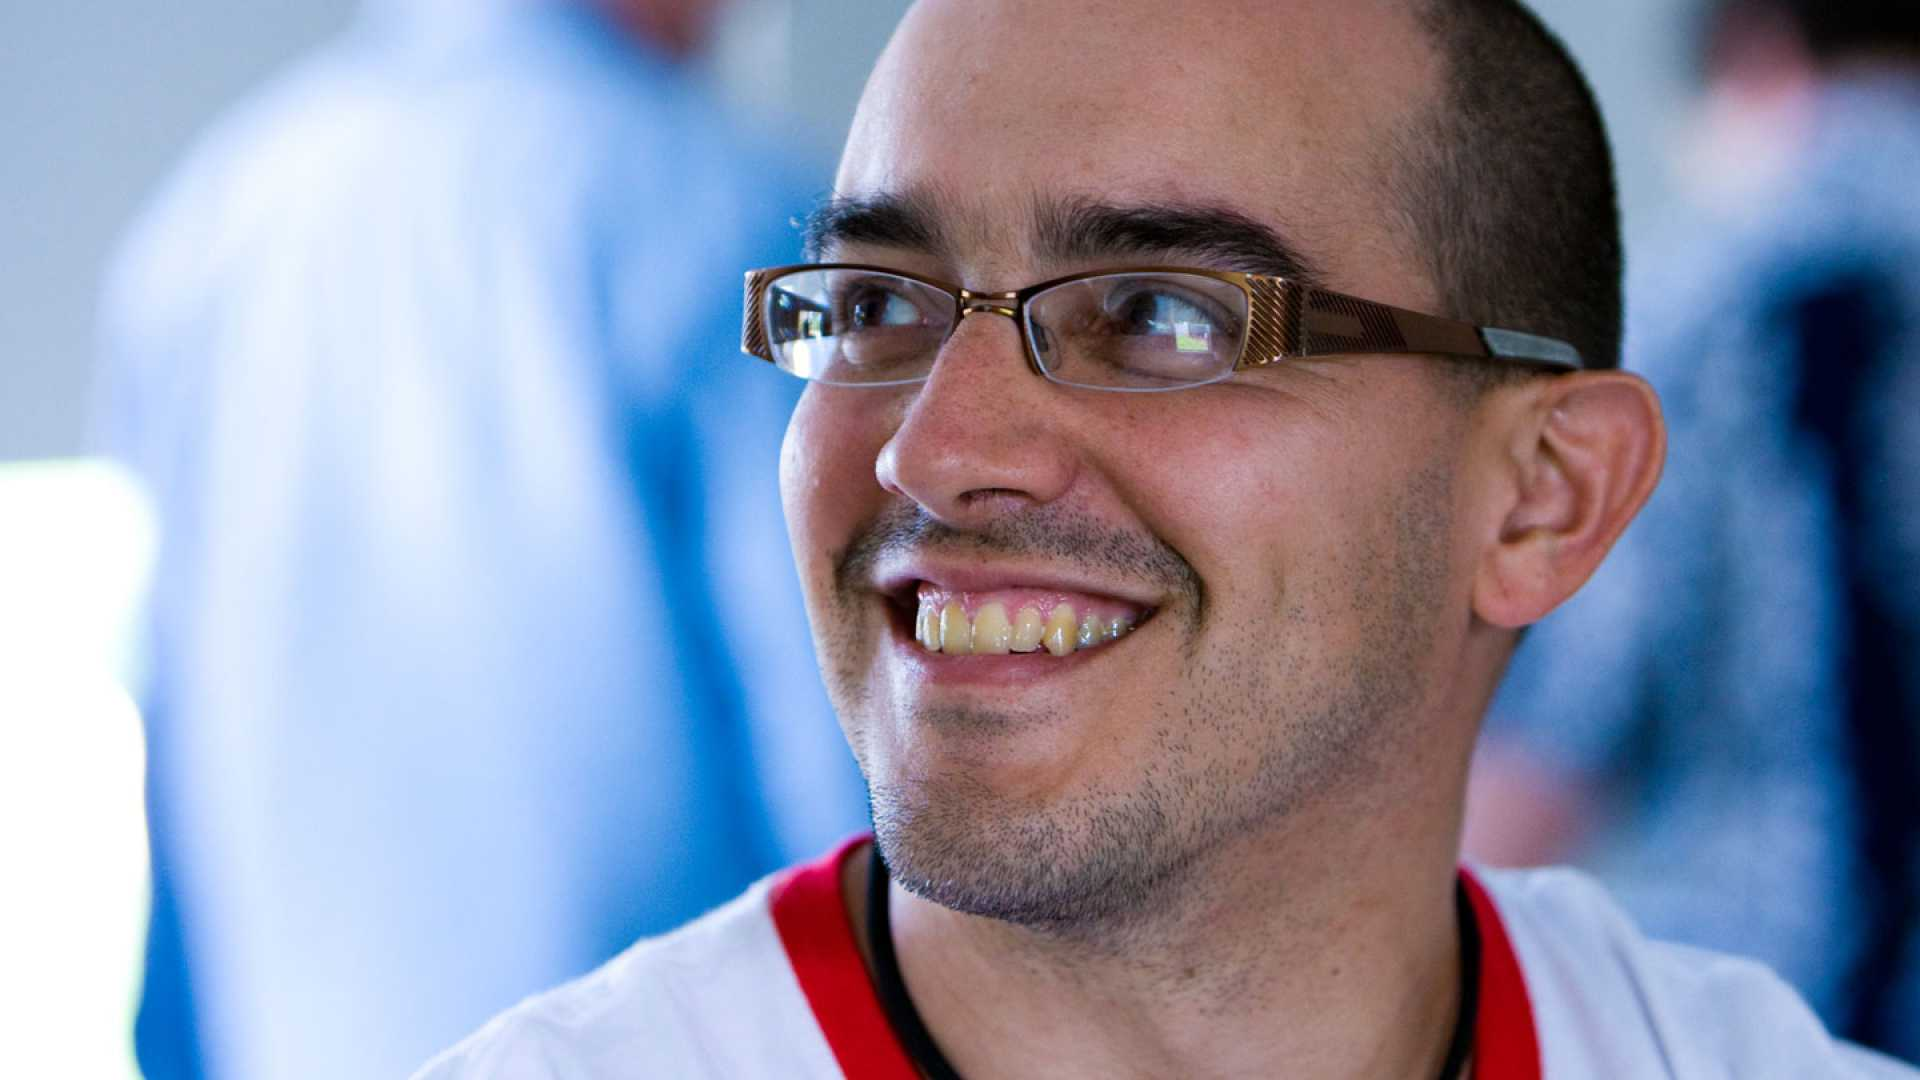 Silicon Valley VC and founder of the 500 Startups accelerator, Dave McClure.